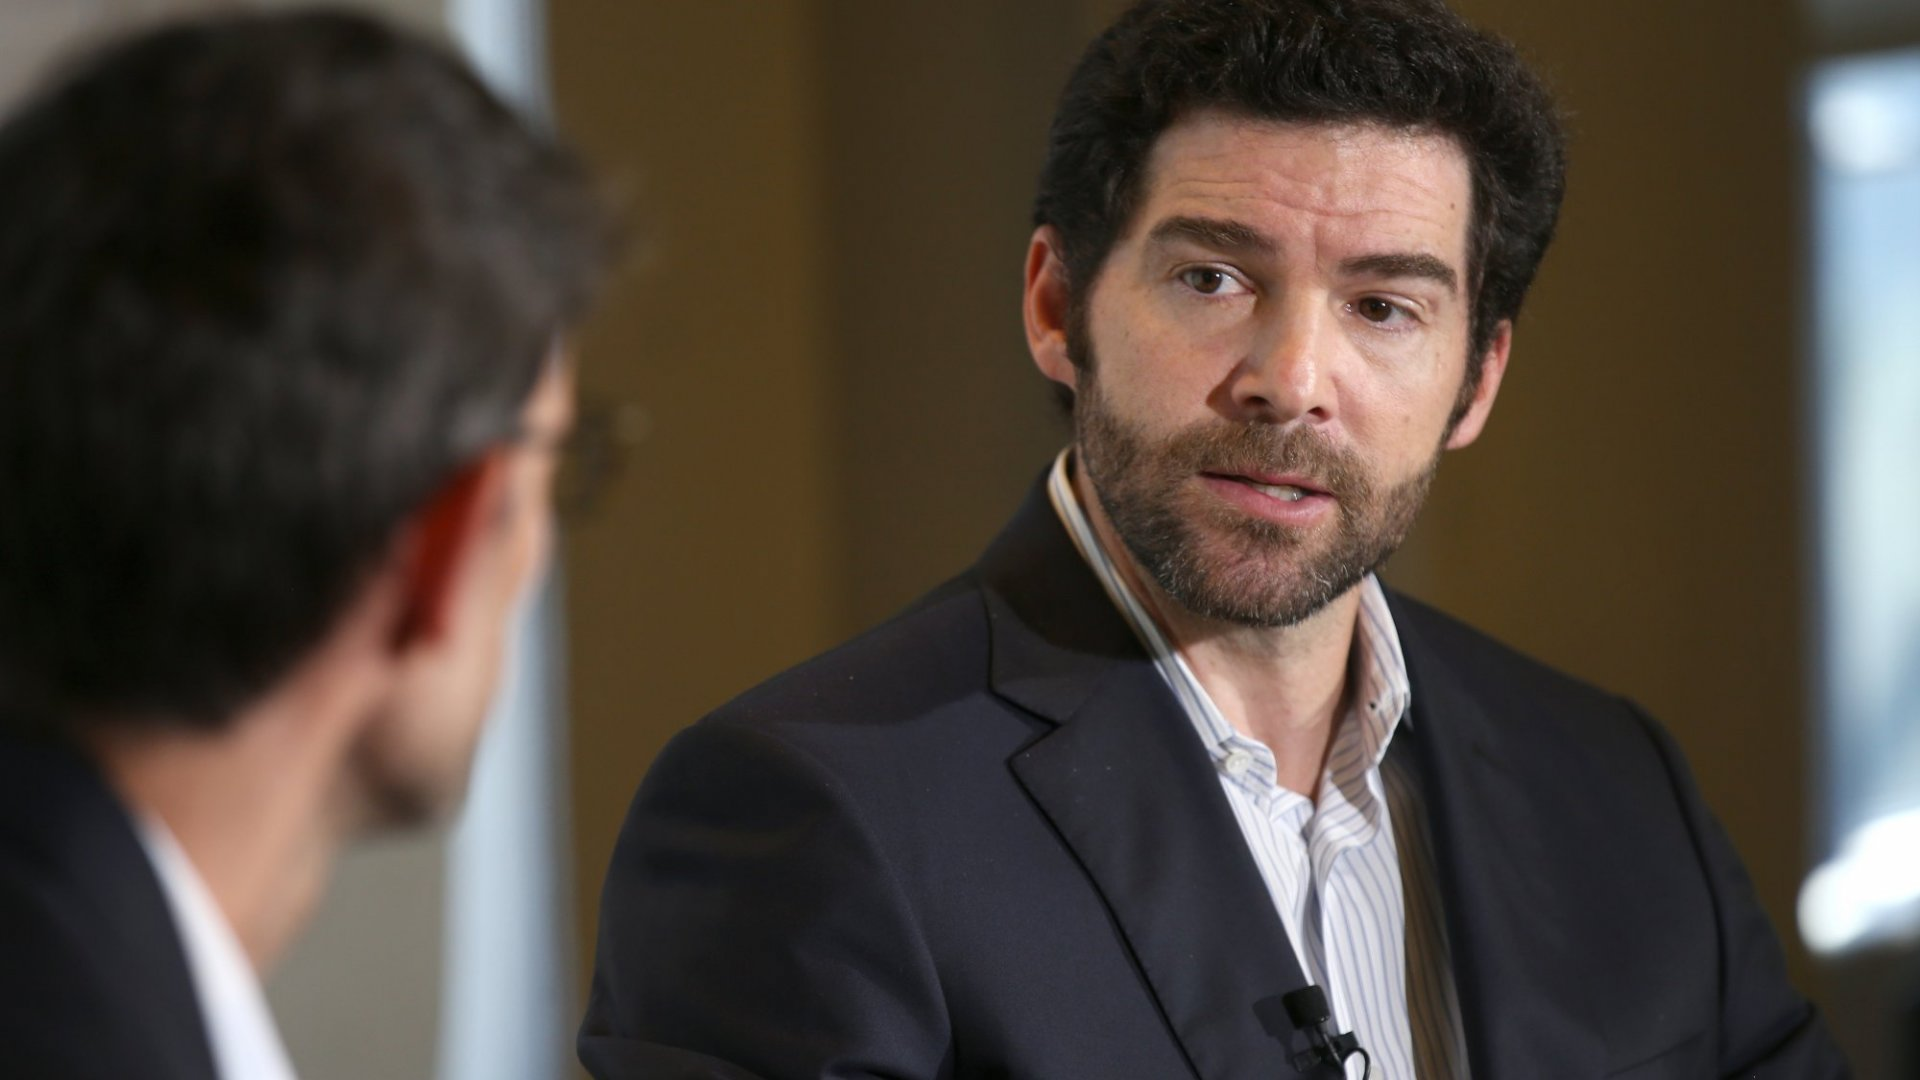 In 3 Short Words, LinkedIn's CEO Reveals What Defines an Effective Leader